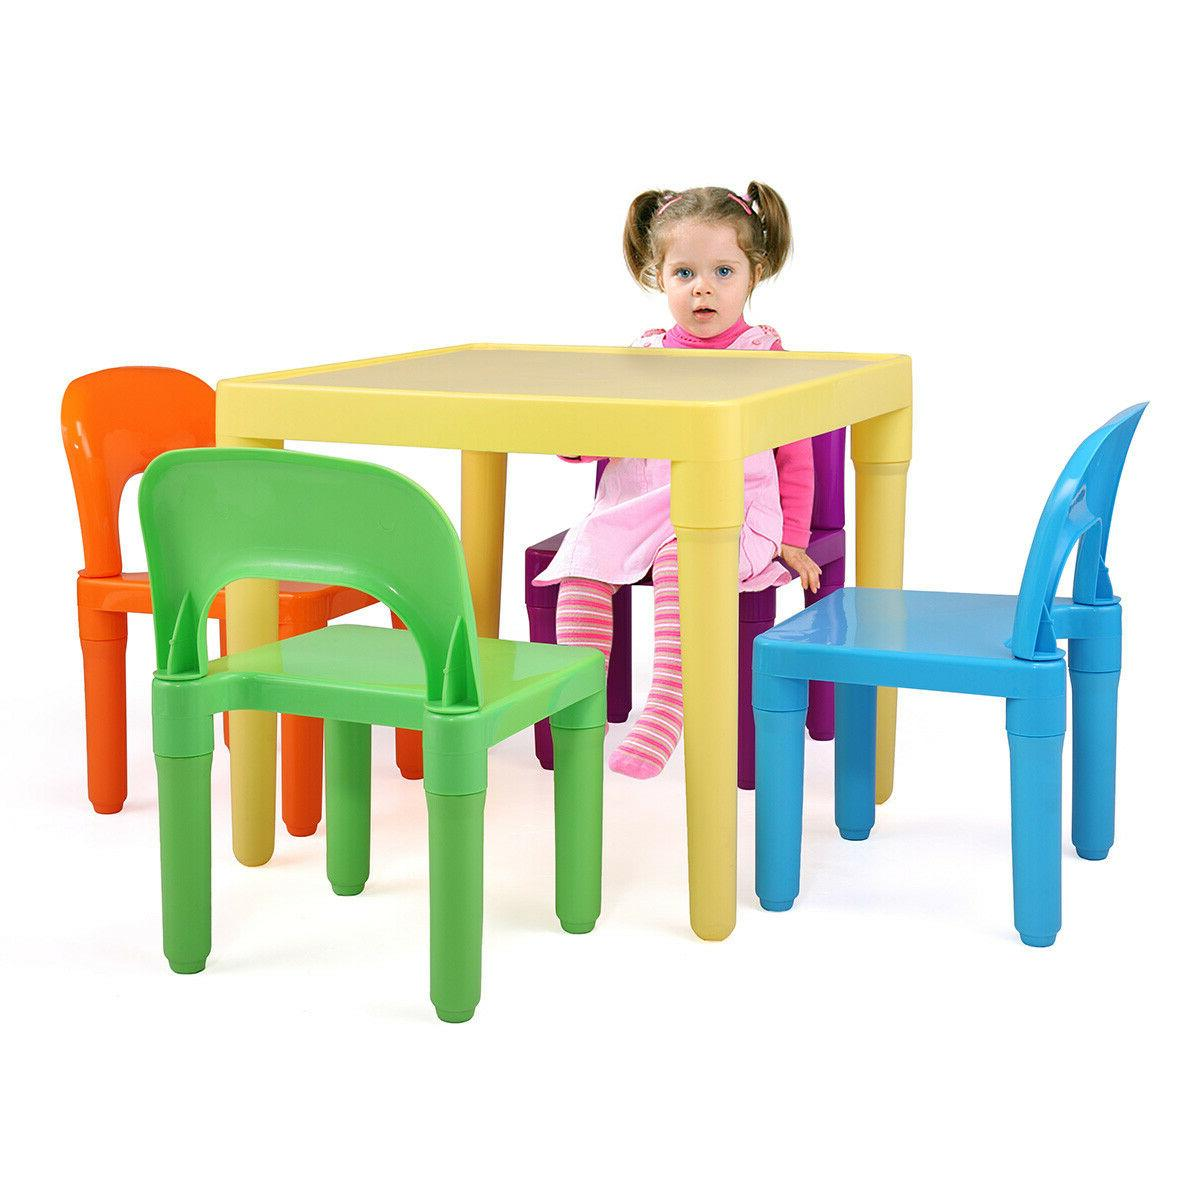 Kids Plastic Table and 4 Rainbow Play Colors